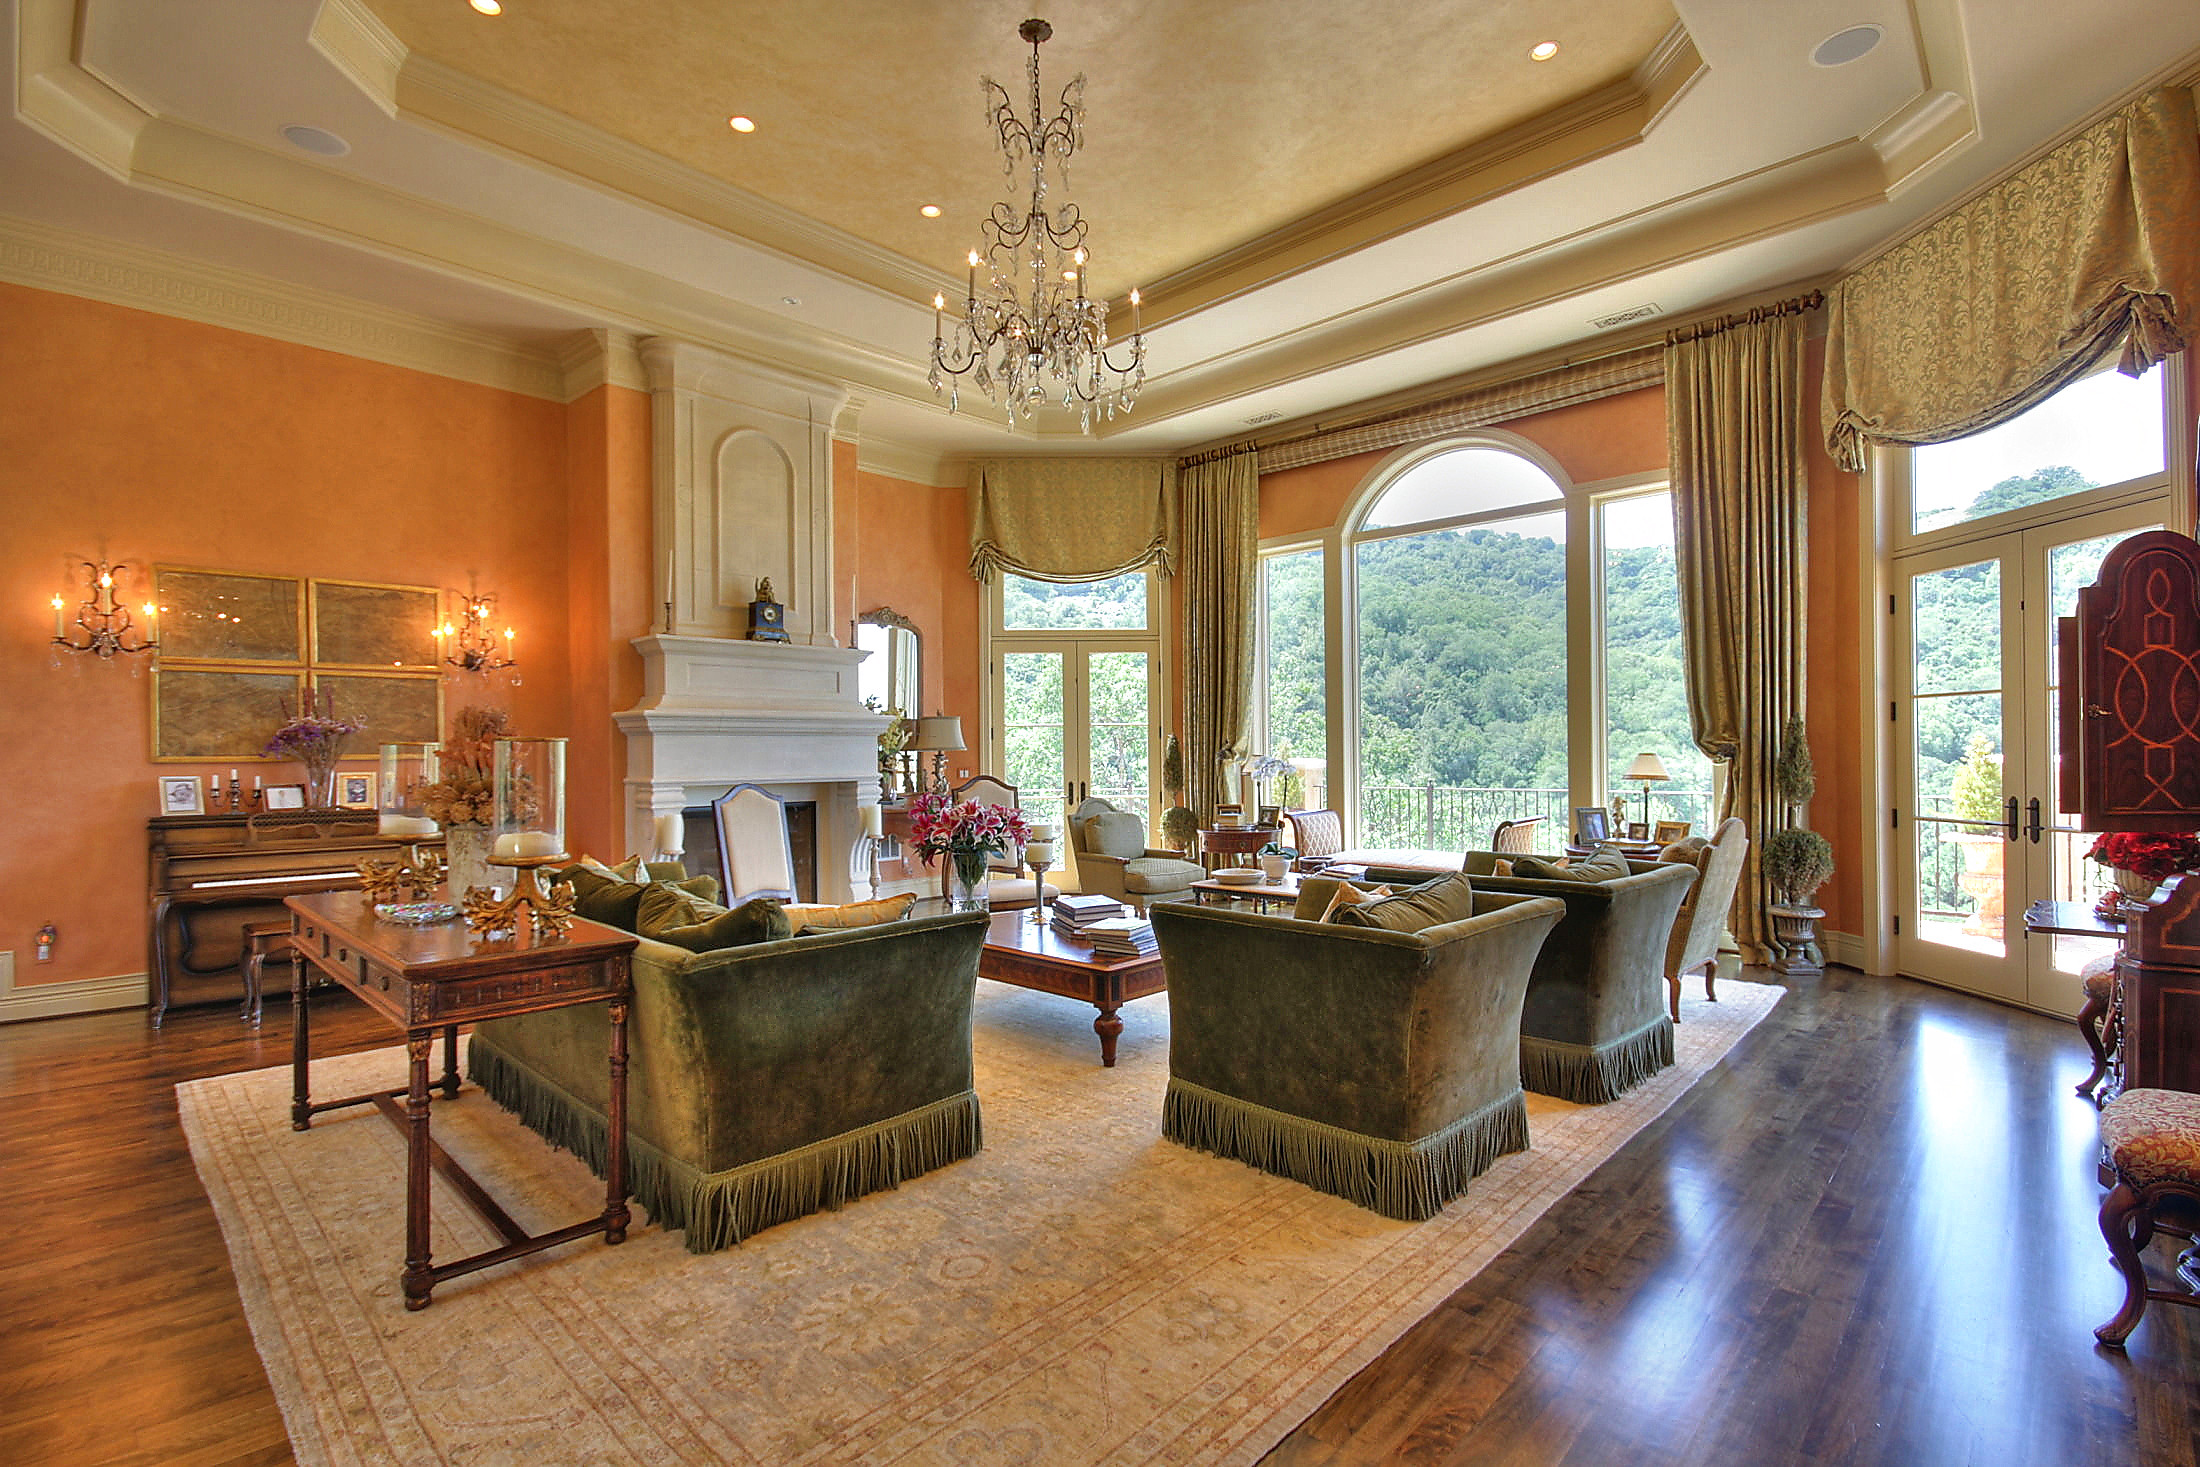 amy mccafferty specializes in los gatos ca homes real estate and property listings - Interior Design Los Gatos